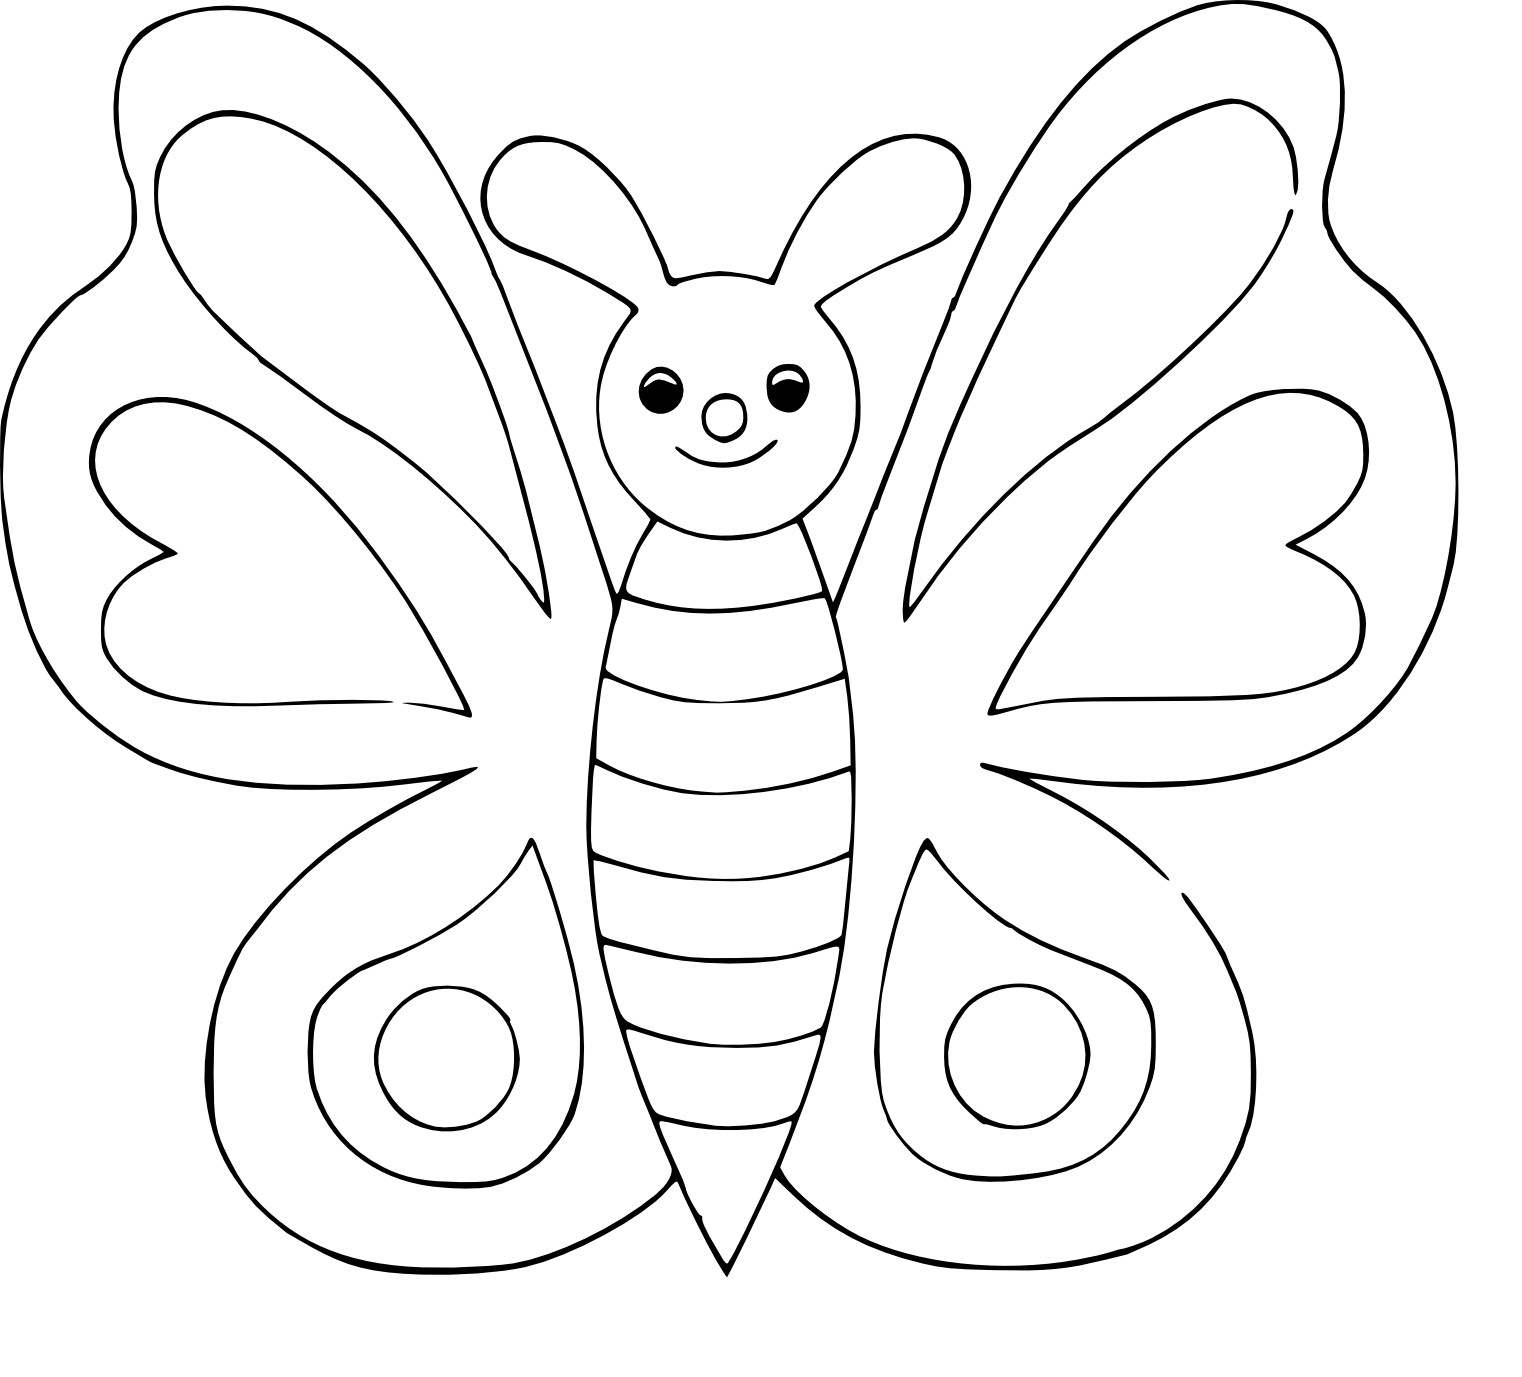 Coloriage papillon simple à imprimer